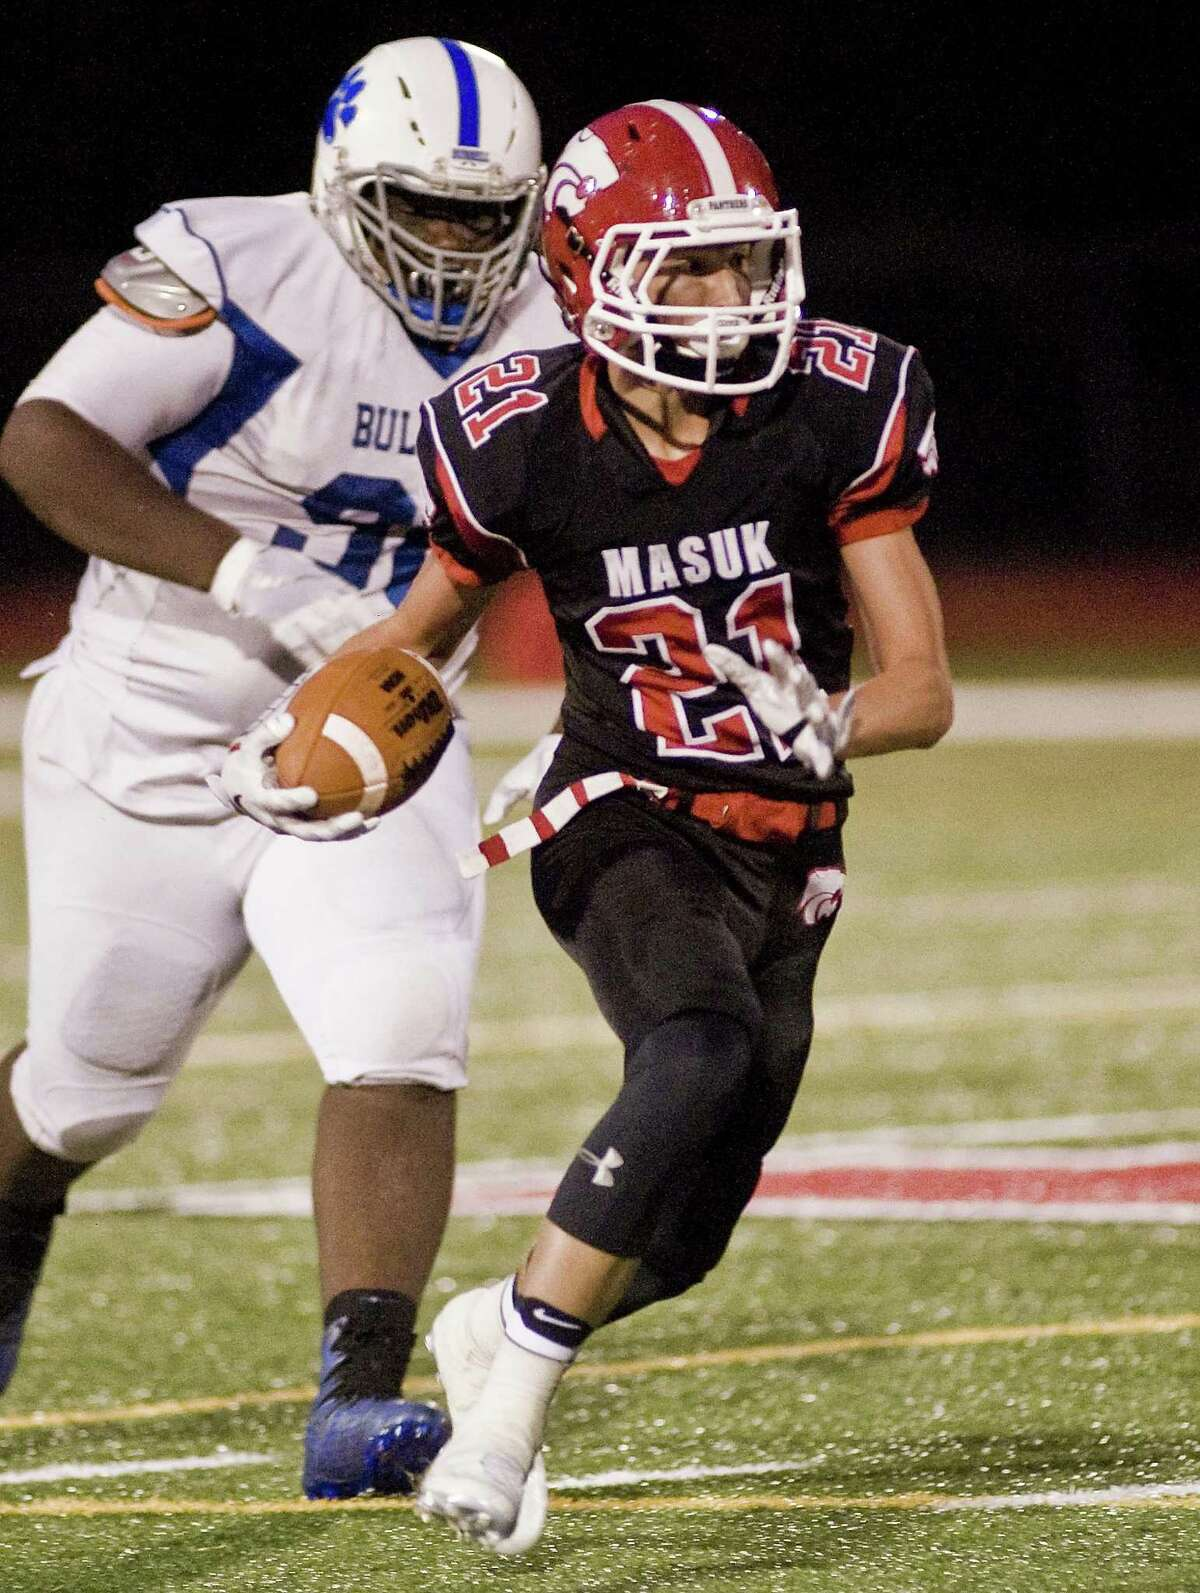 Masuk High School's Benjamin Vickowski carries the ball in a game against Bunnell High School, played at Masuk. Friday, Sept. 8, 2017